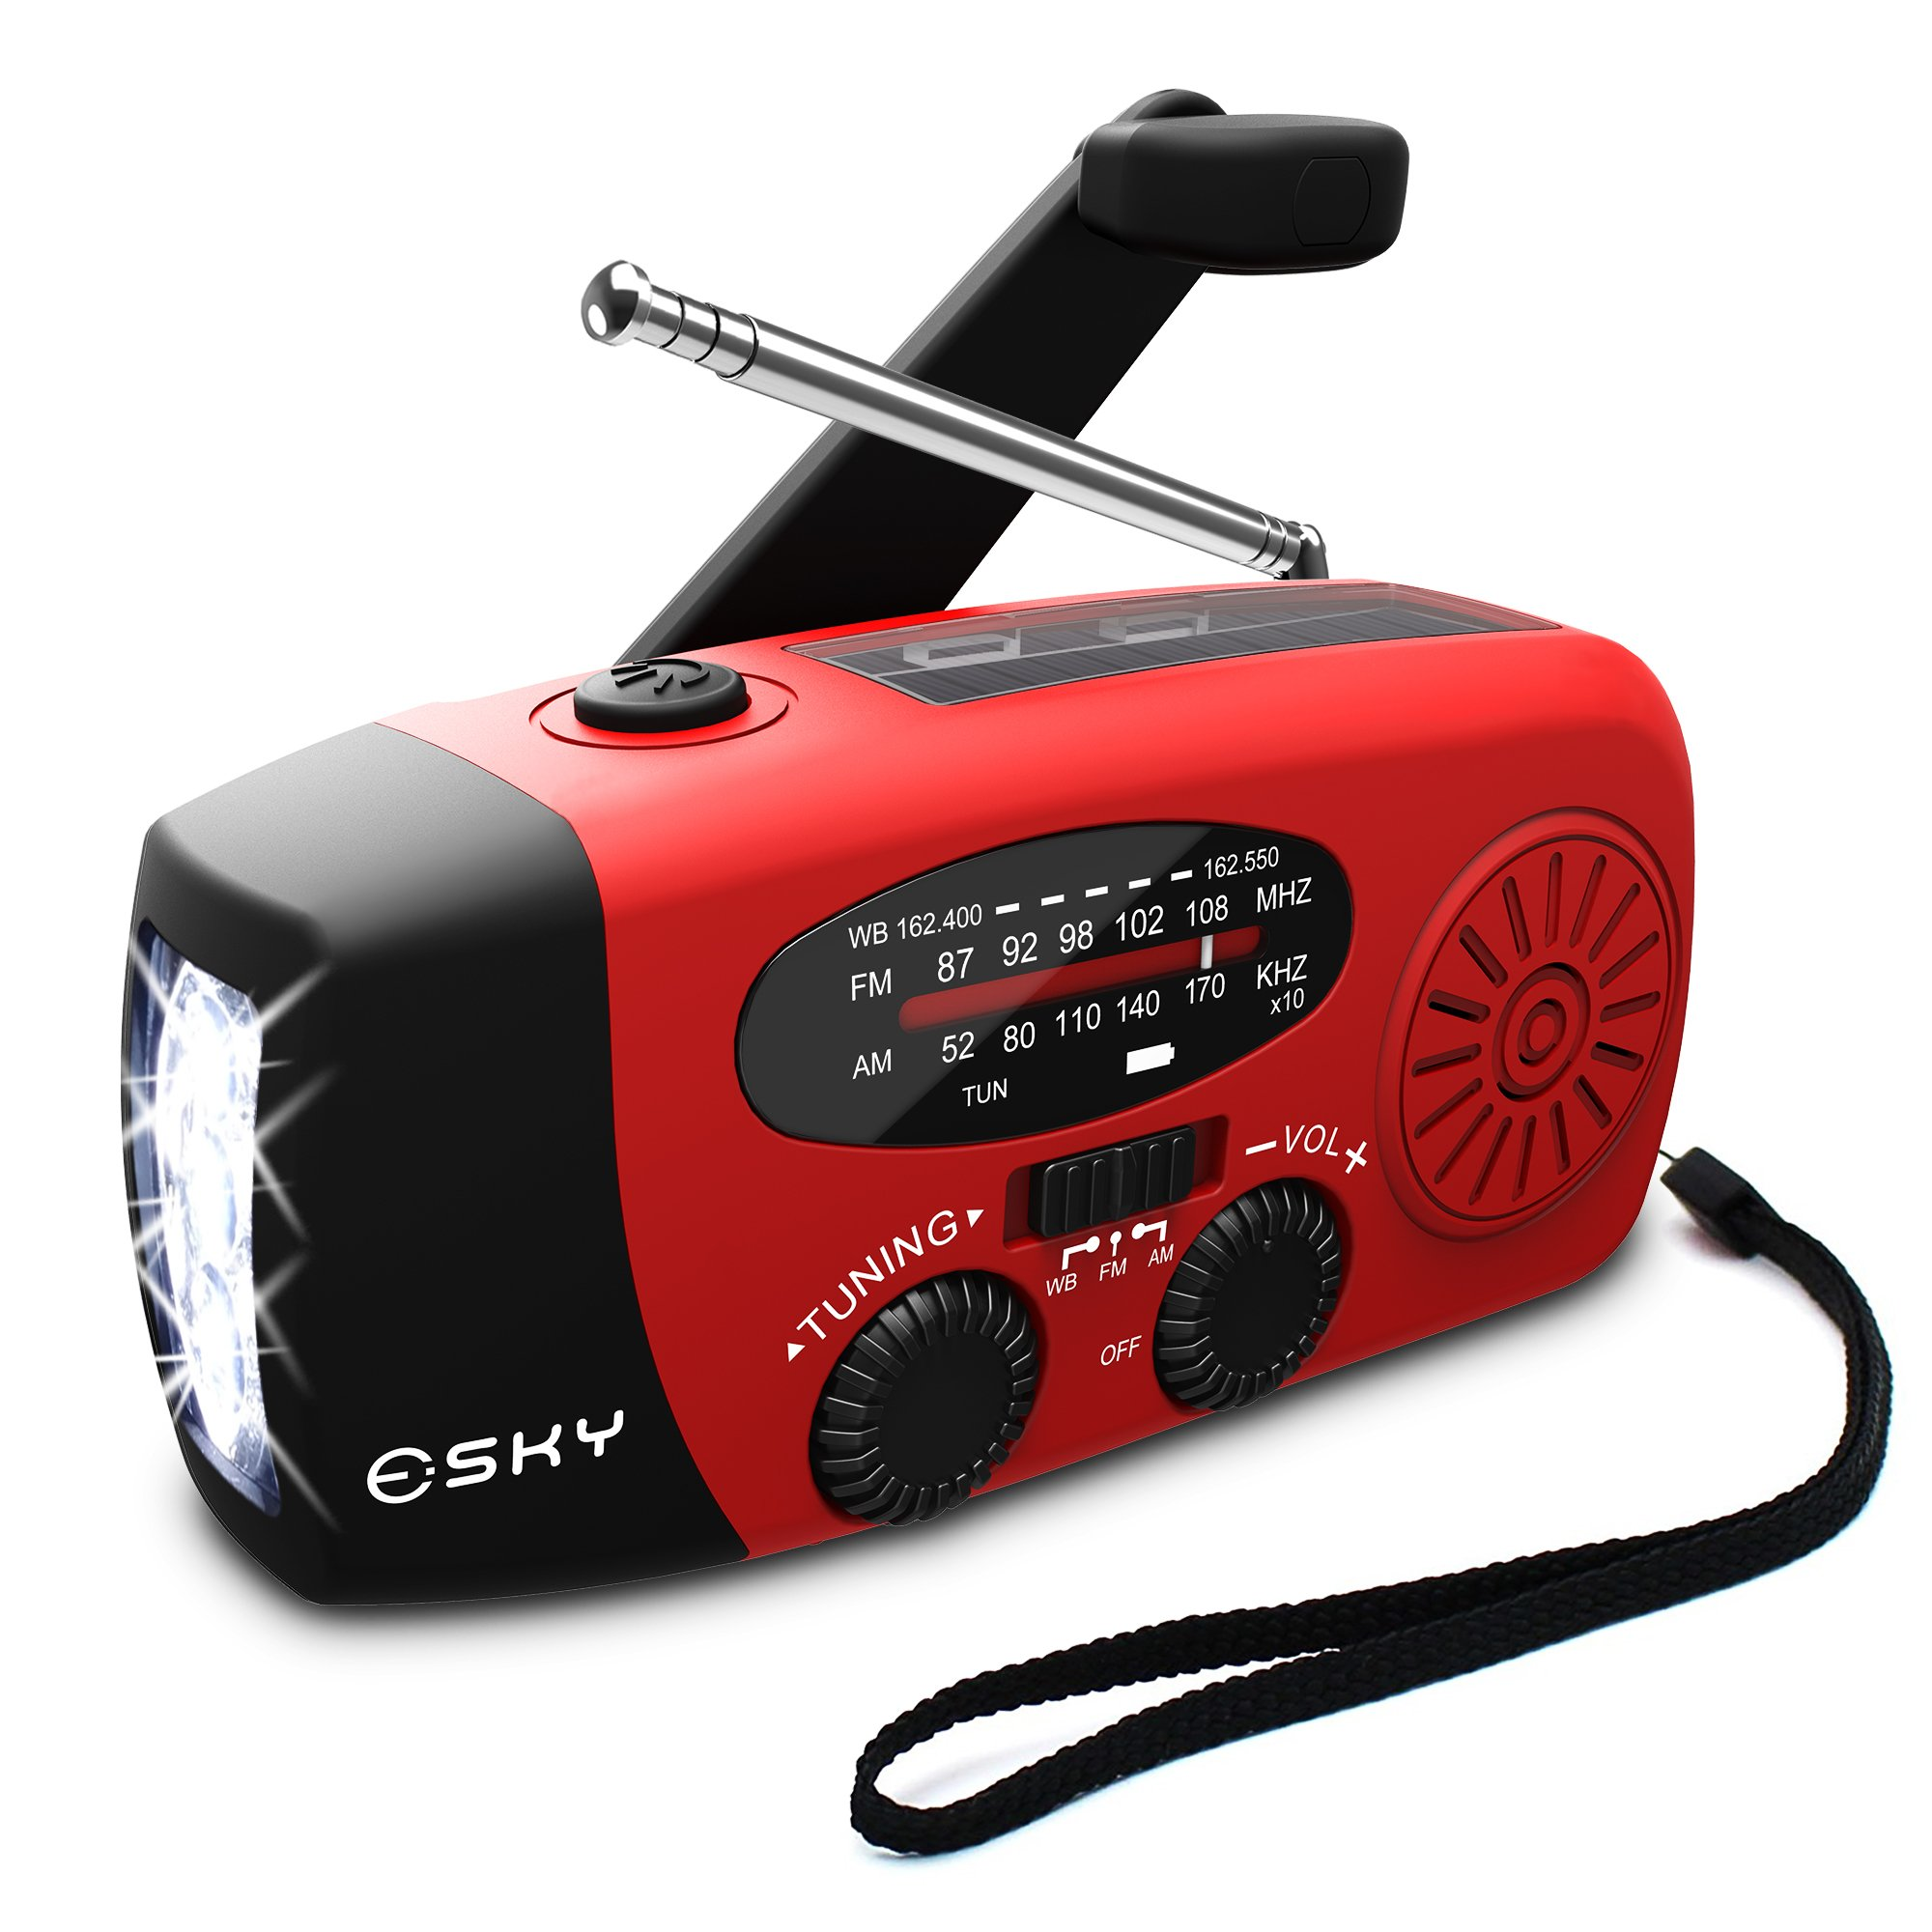 [2018 Upgraded] Esky Portable Emergency Weather Radio Hand Crank Self Powered AM/FM/NOAA Solar Radios with 3 LED Flashlight 1000mAh Power Bank Phone Charger (Red) by Esky